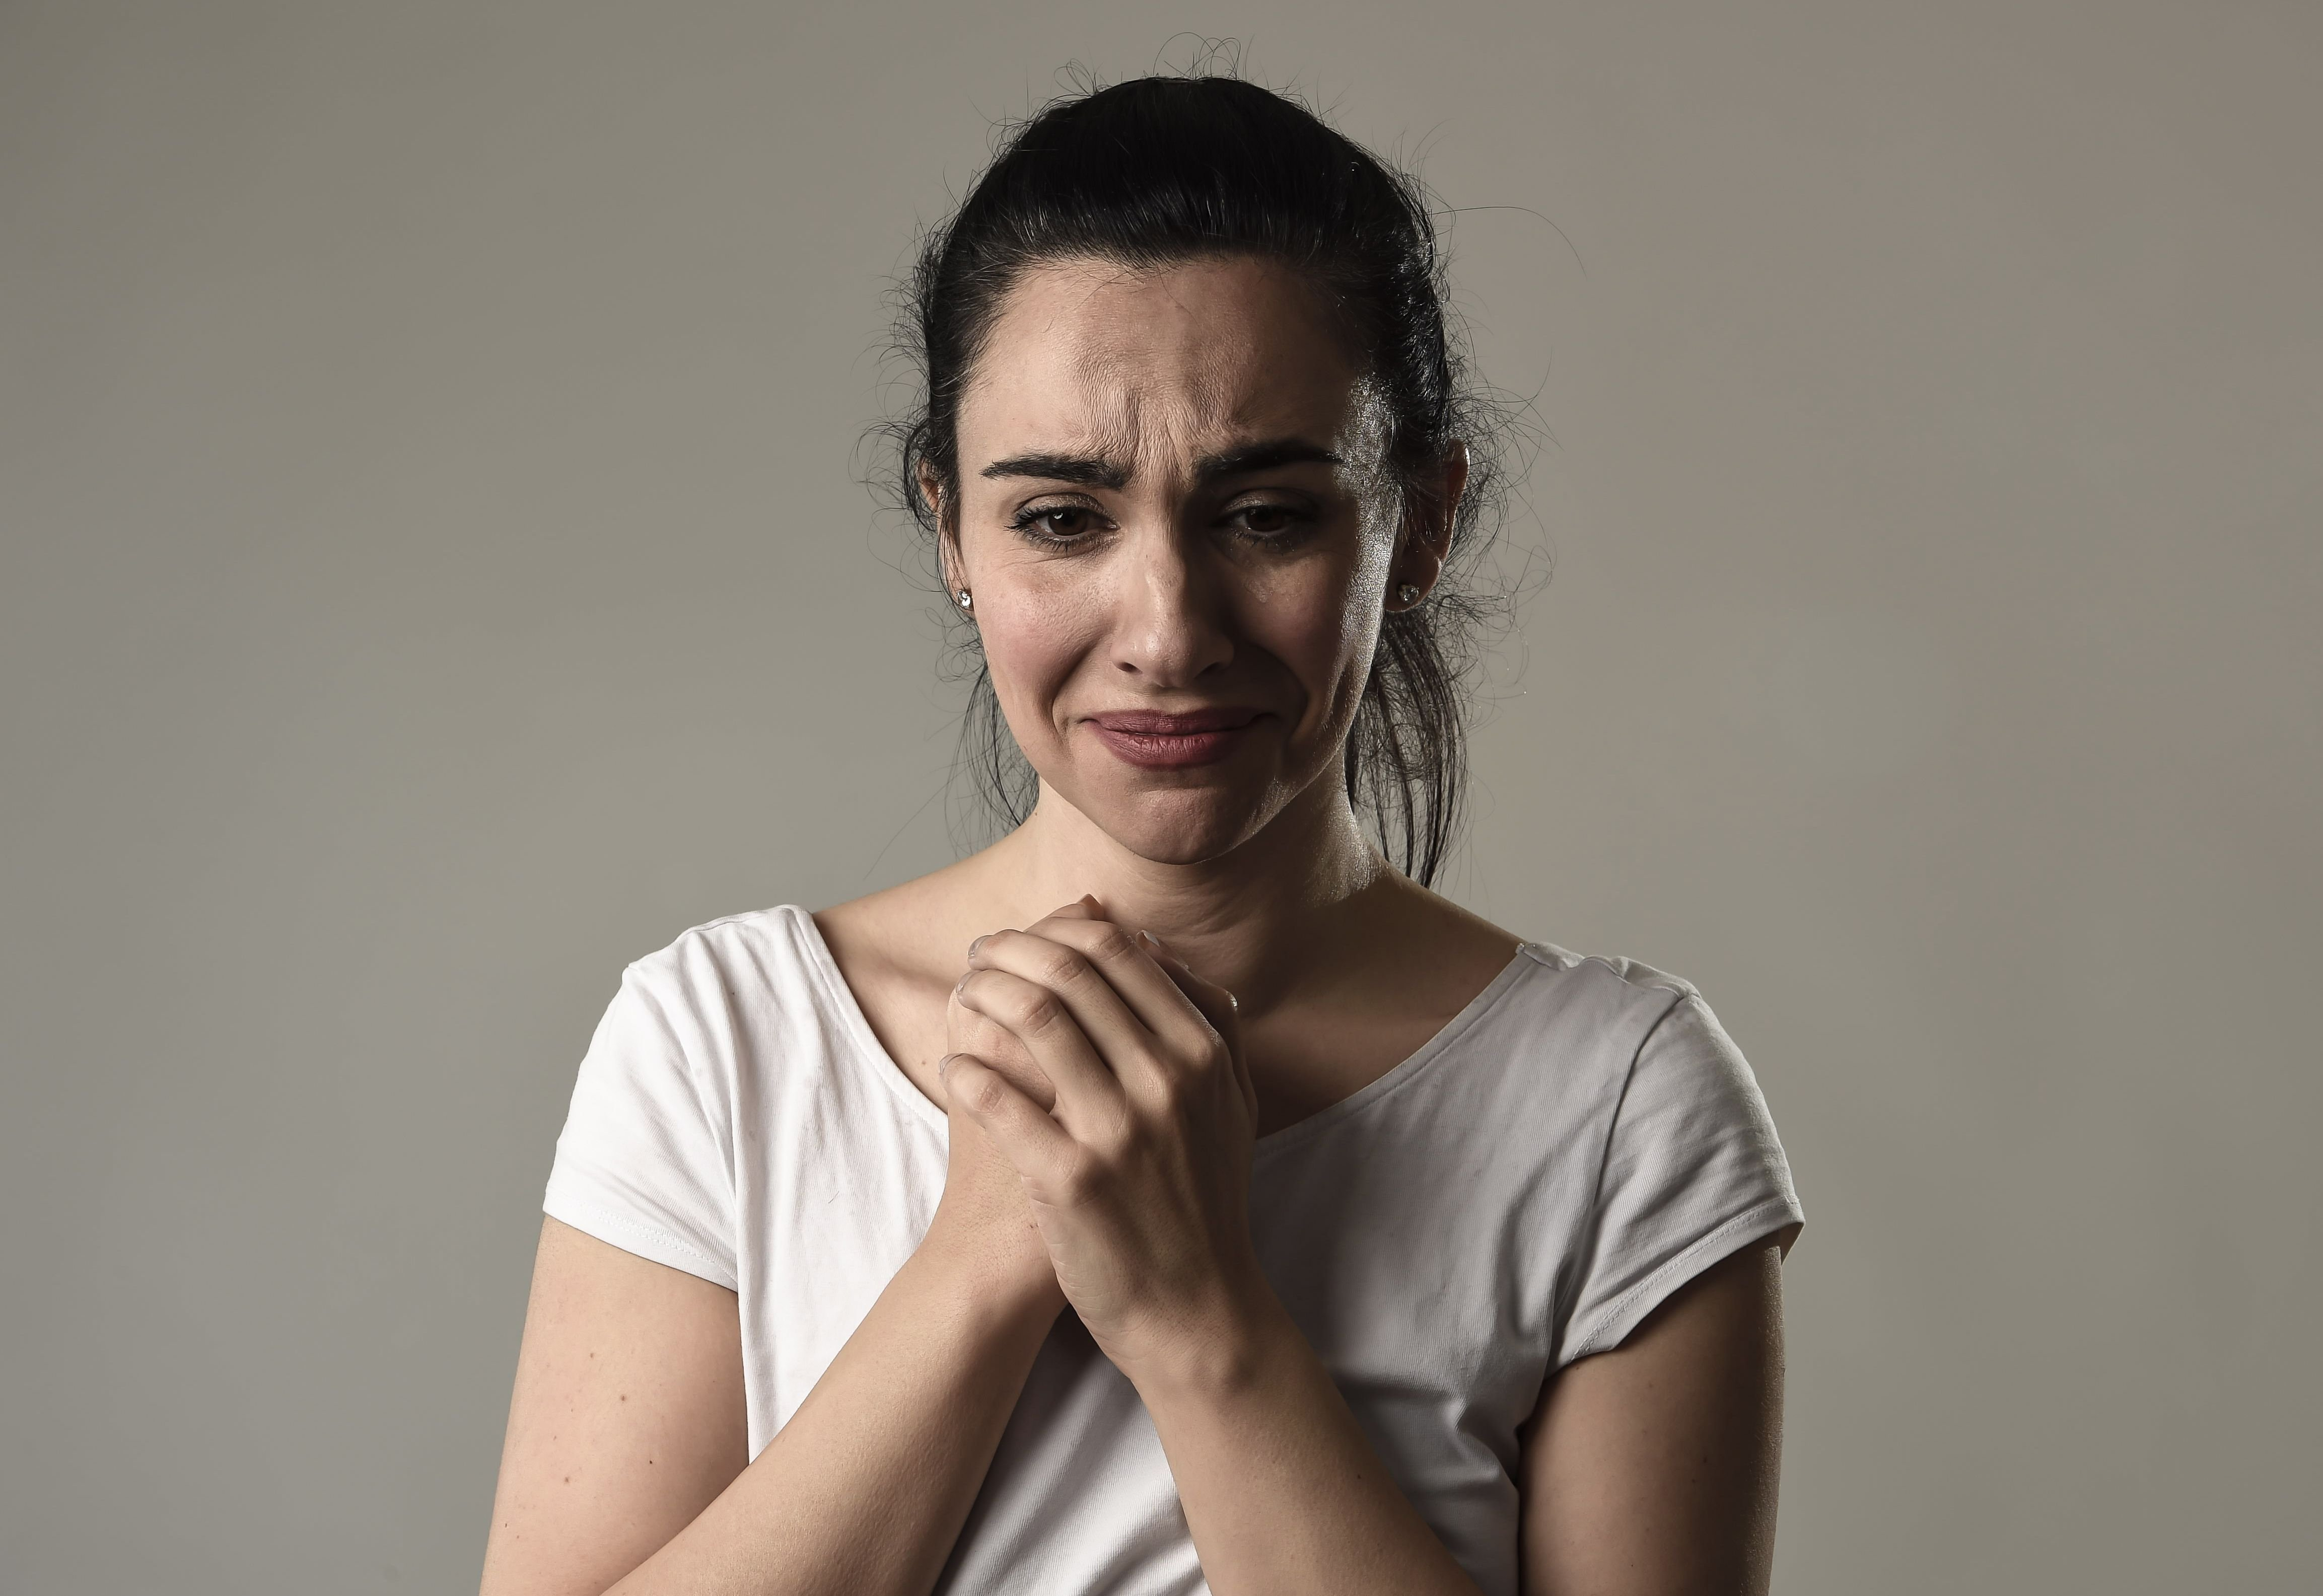 A woman clasps her hands together while looking sad.   Source: Shutterstock